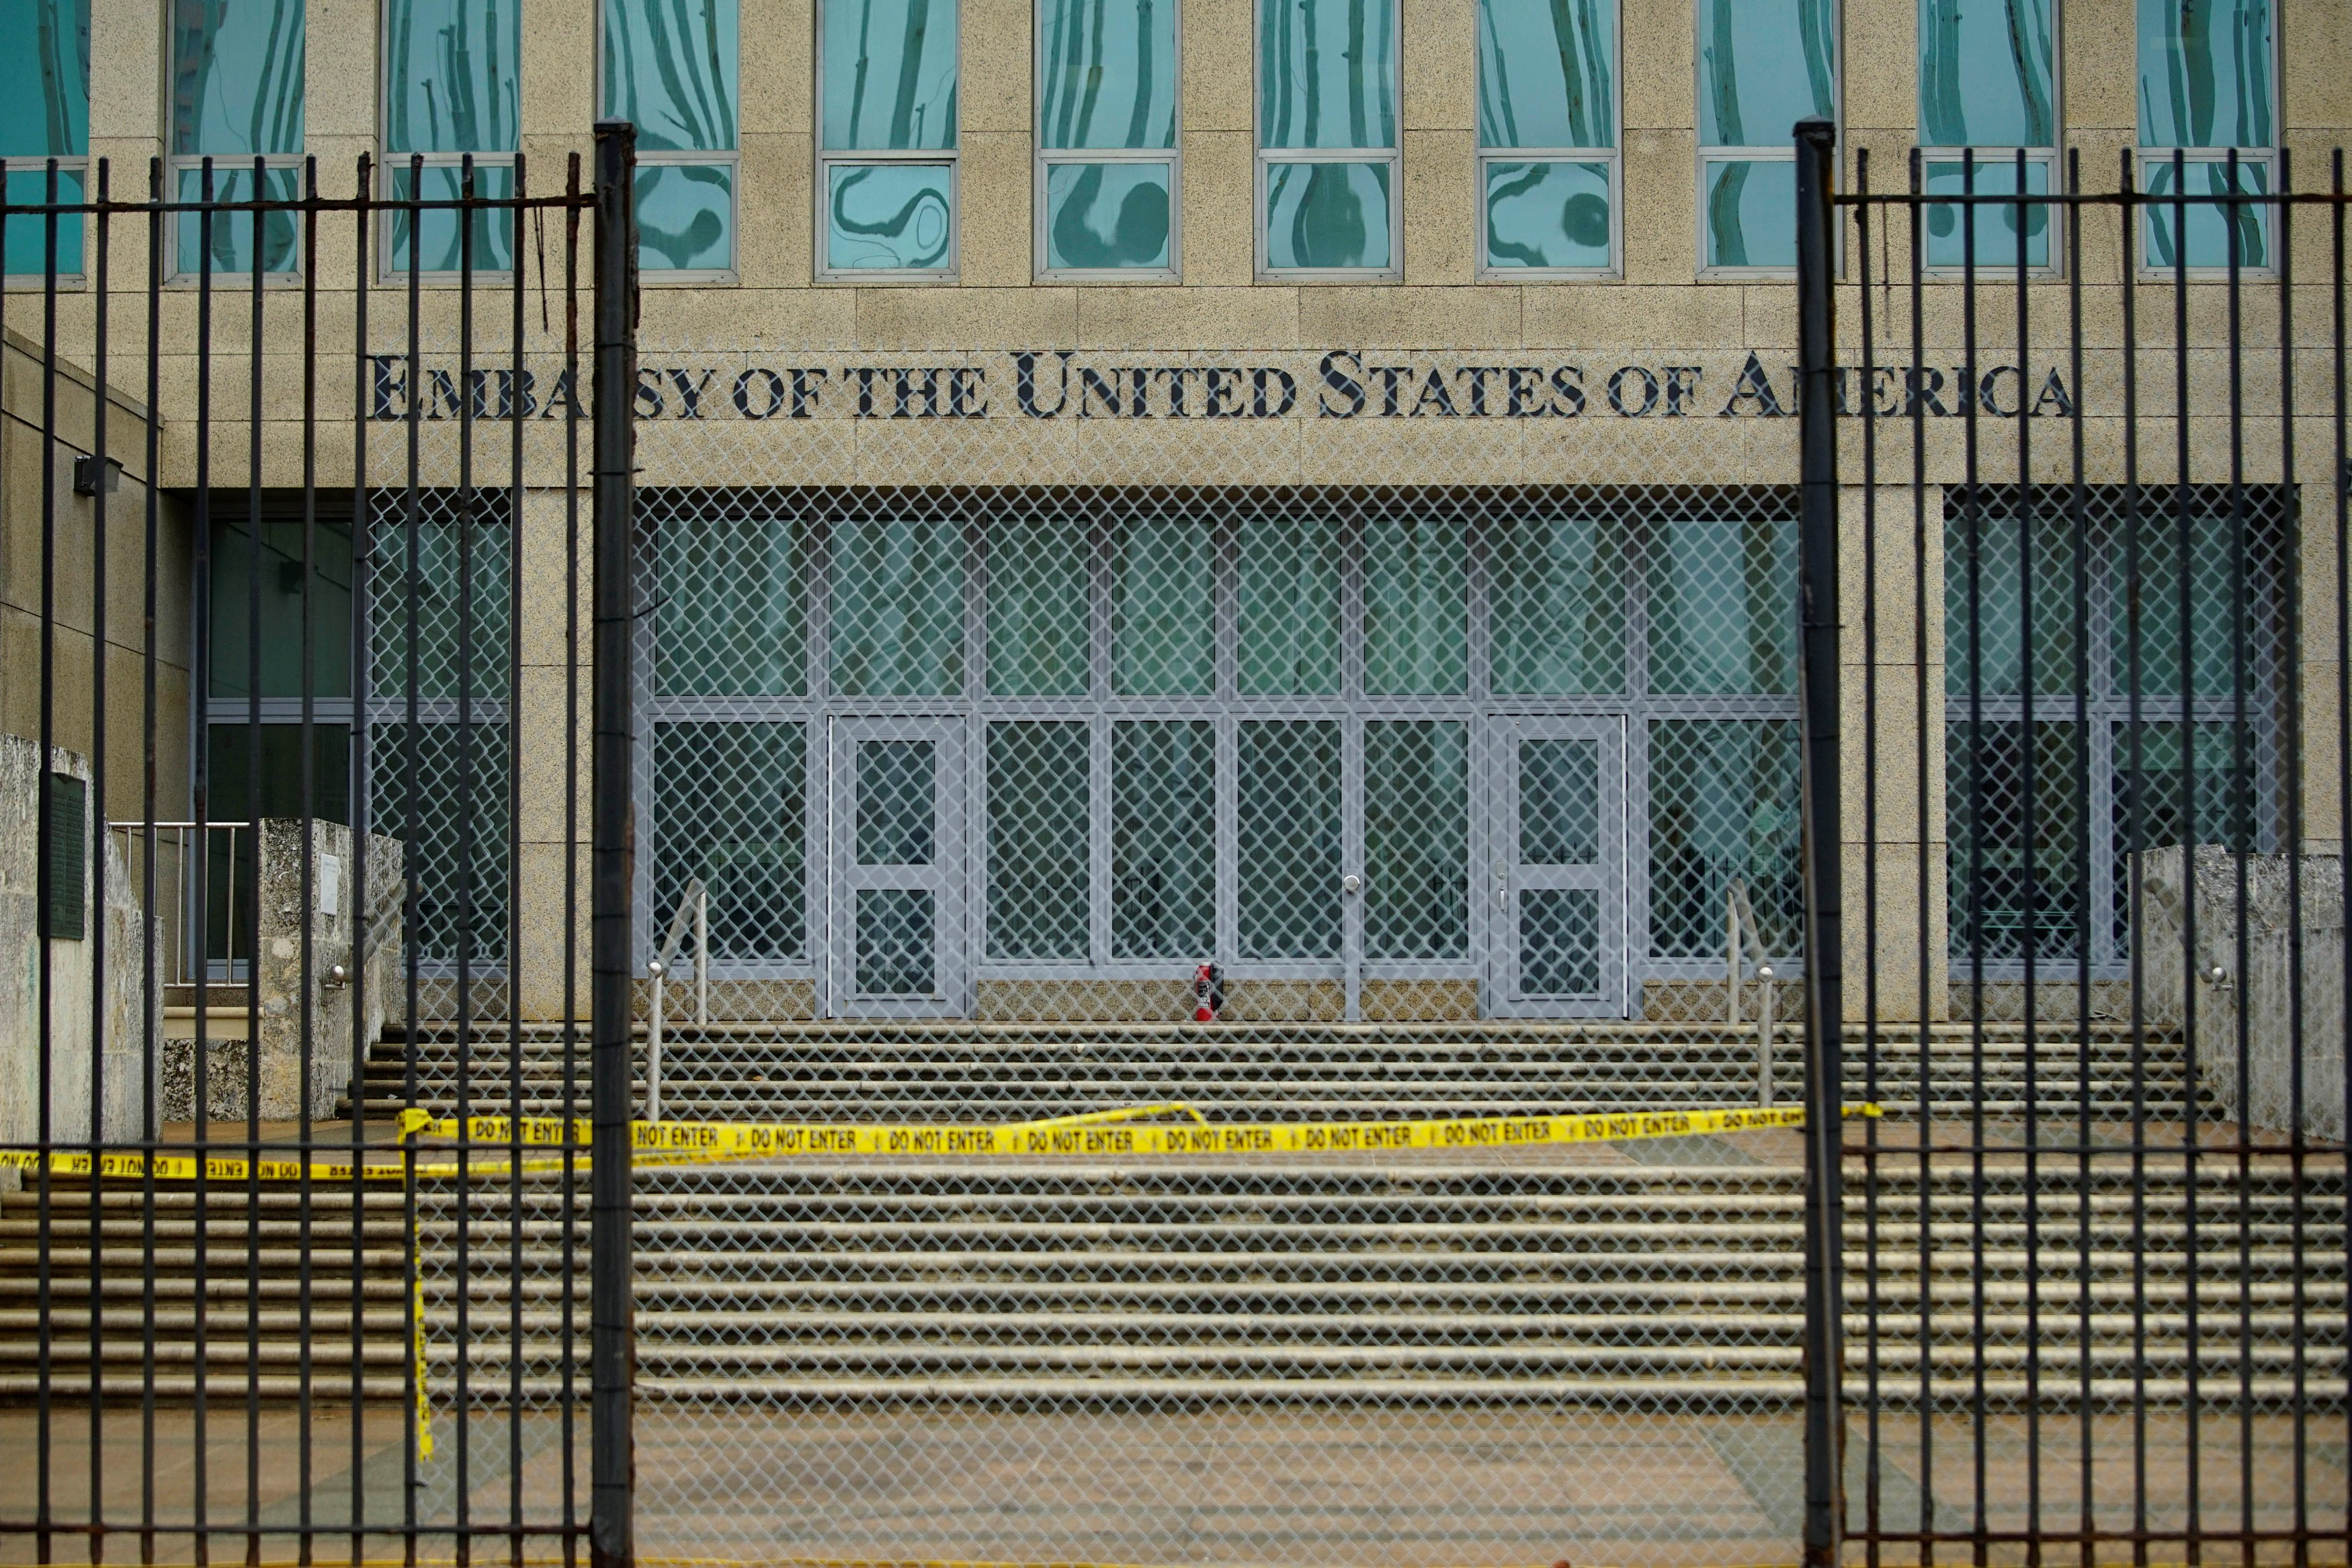 USA warns against travel to Cuba, cuts embassy staff after mysterious 'attacks'